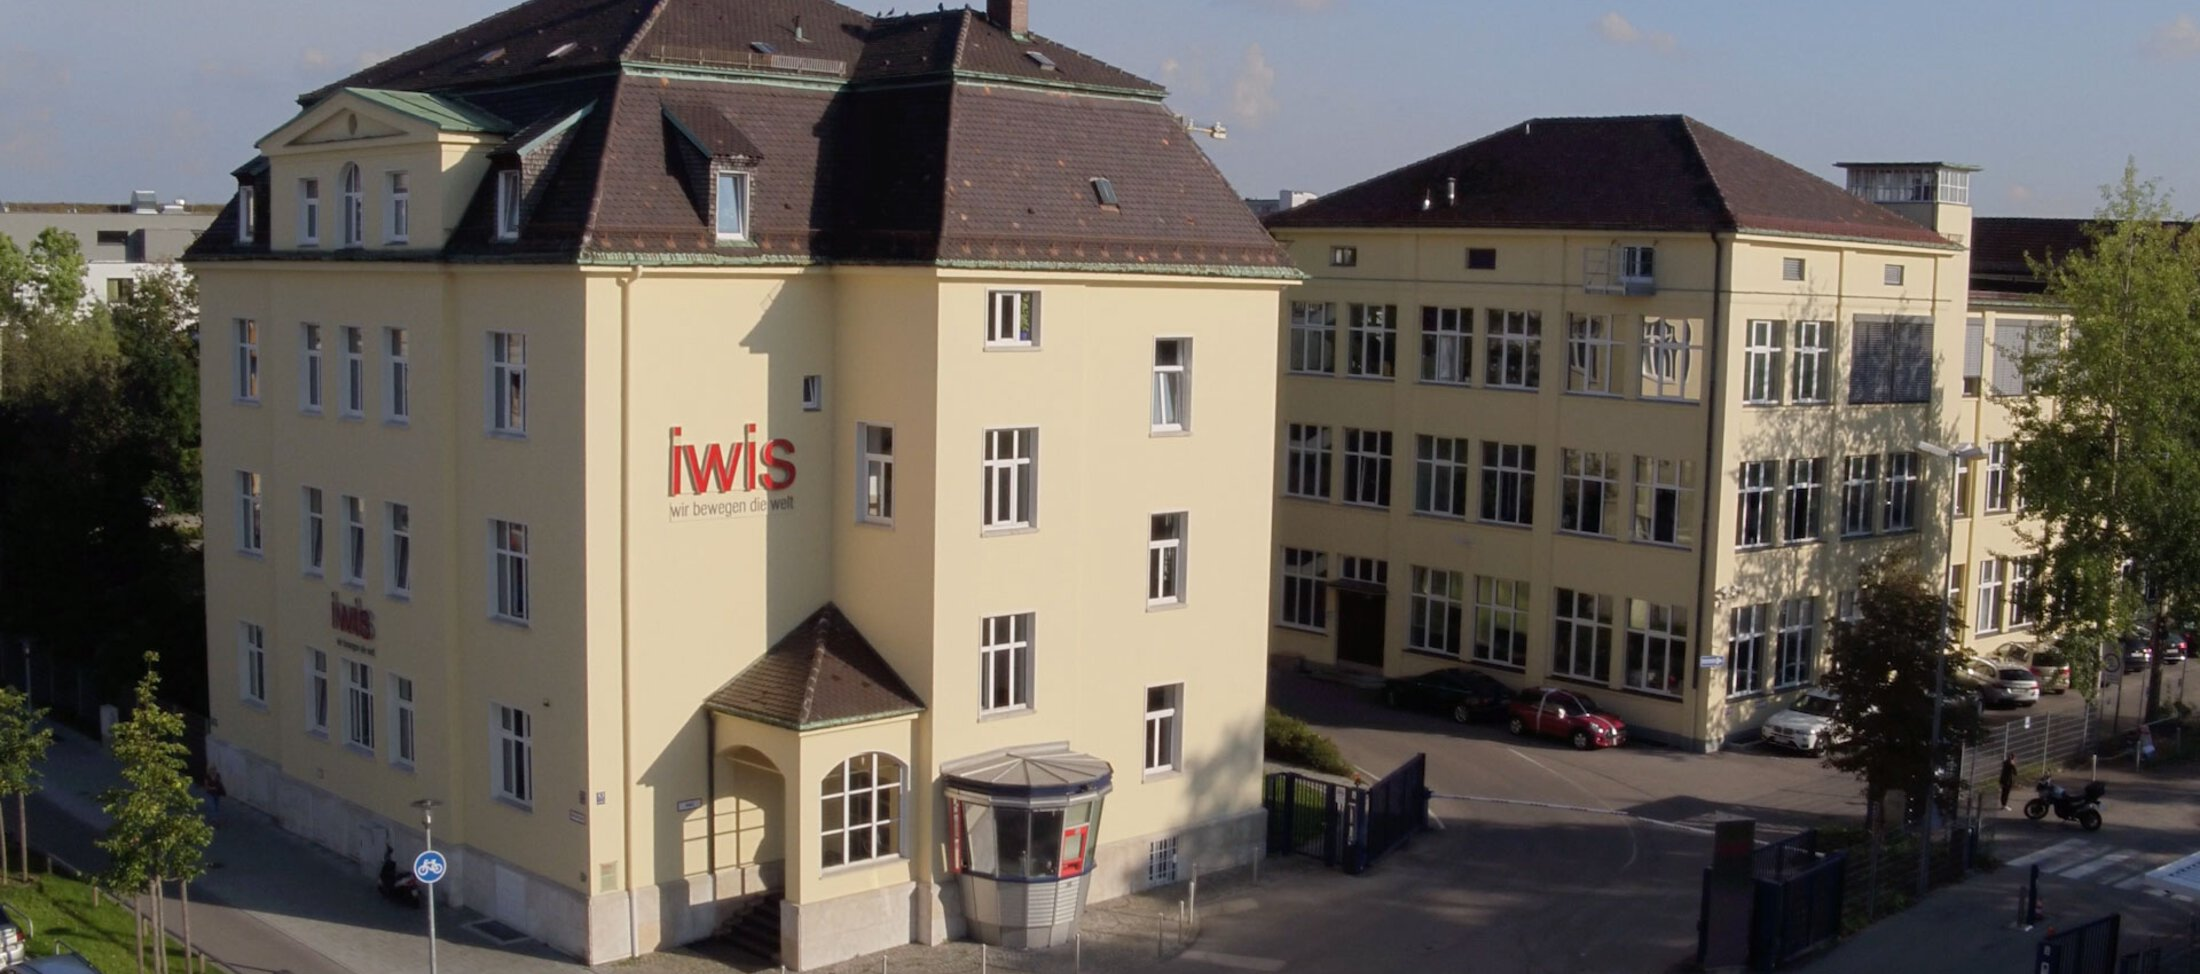 iwis - international chain manufacturer & family company